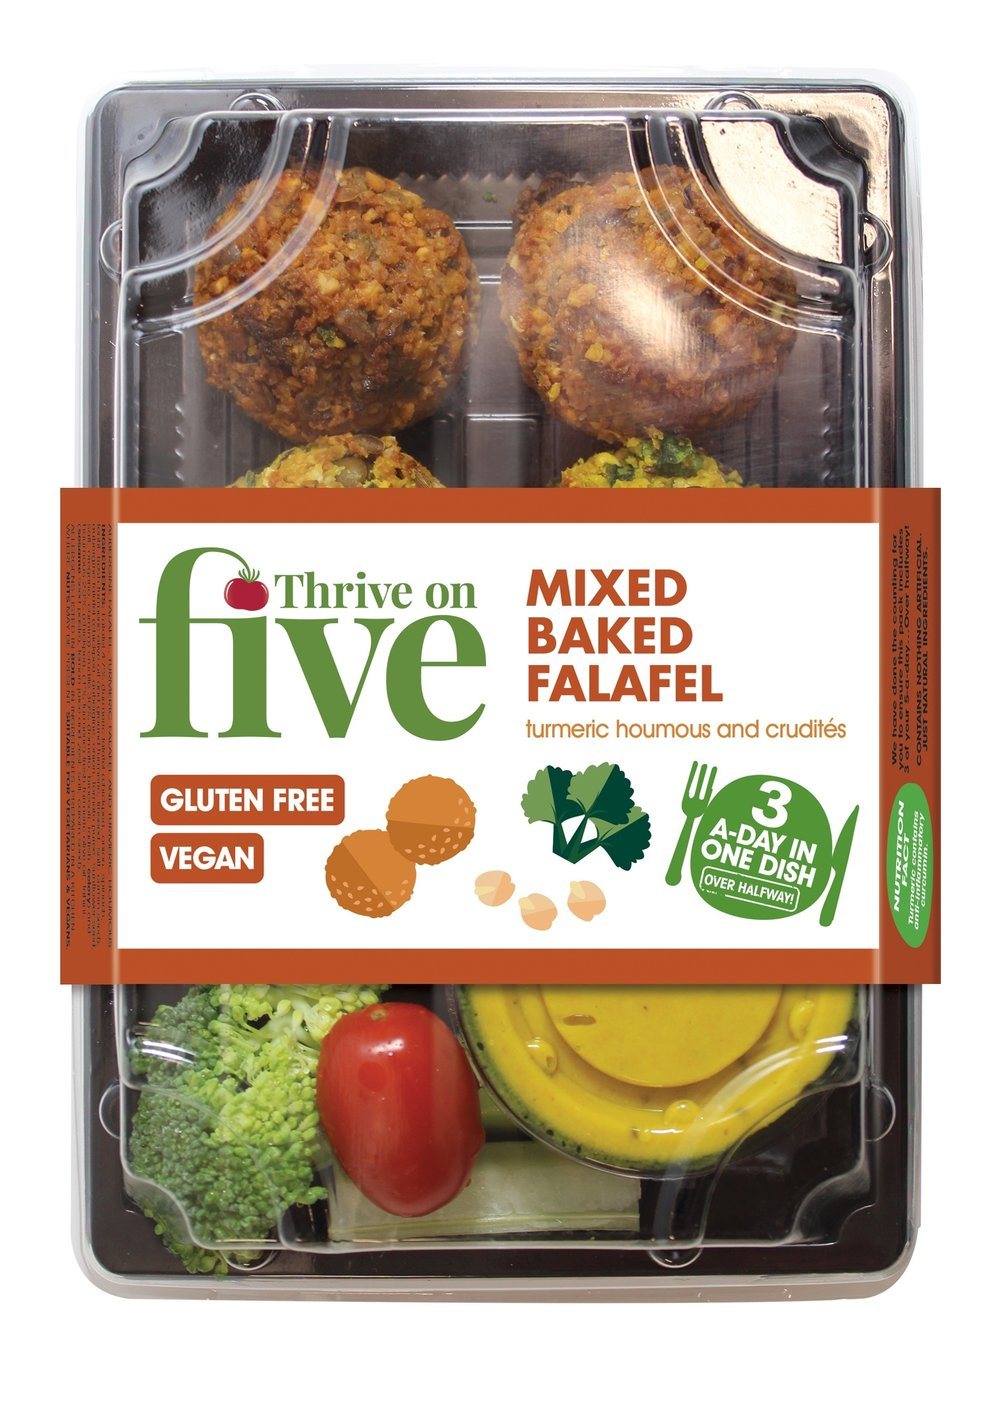 Thrive on Five's range of tasty wraps. A really convenient way to help you get your 5-a-day on the go.